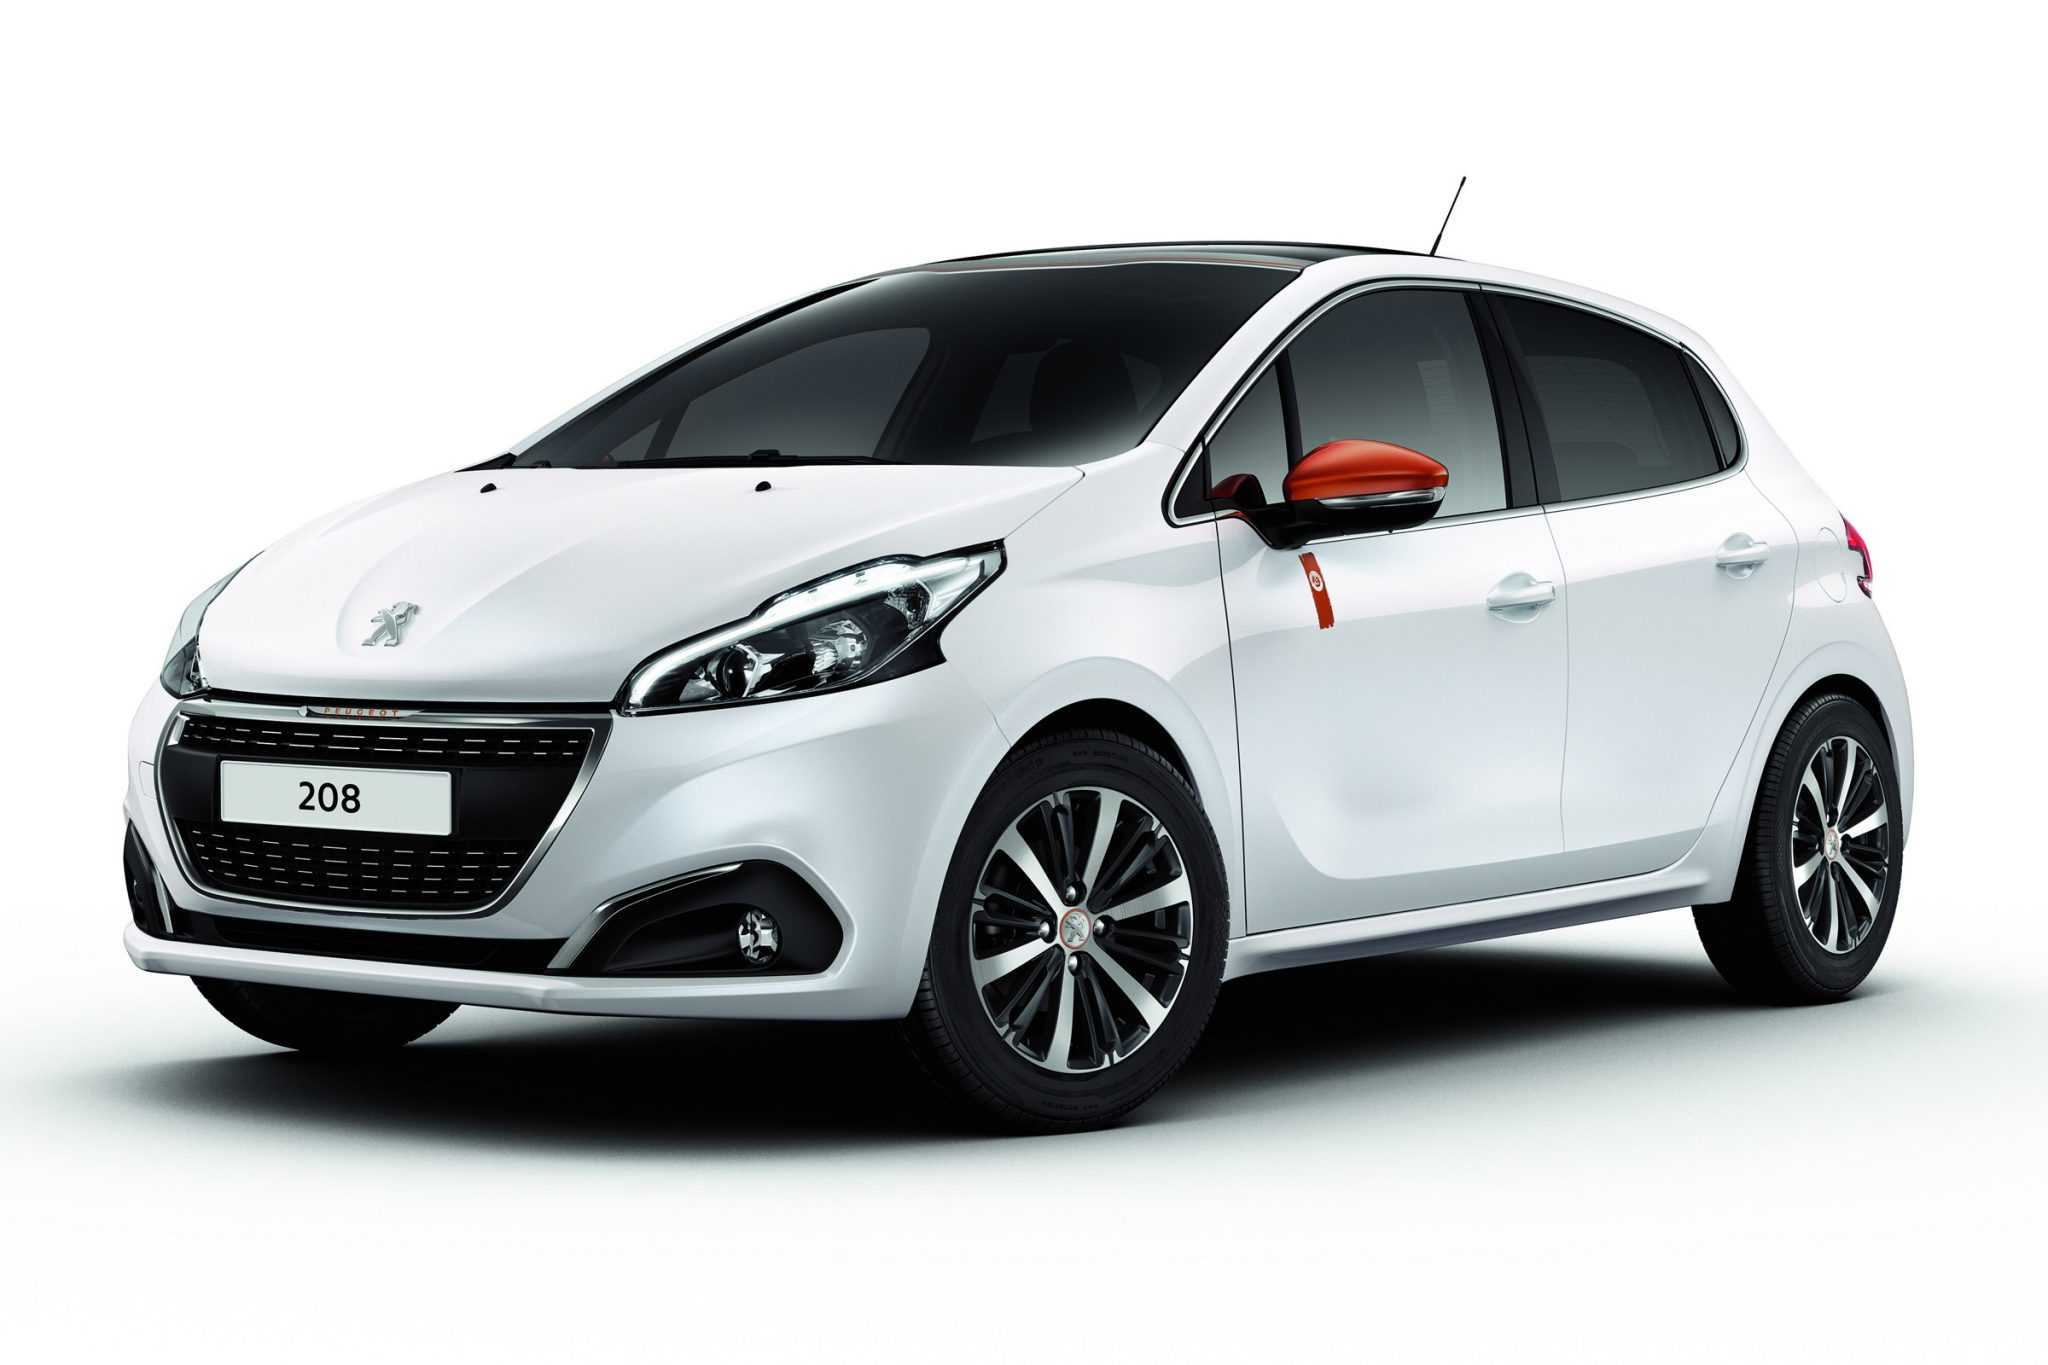 Peugeot 108 and 208 Range of Cars Get New Special Editions